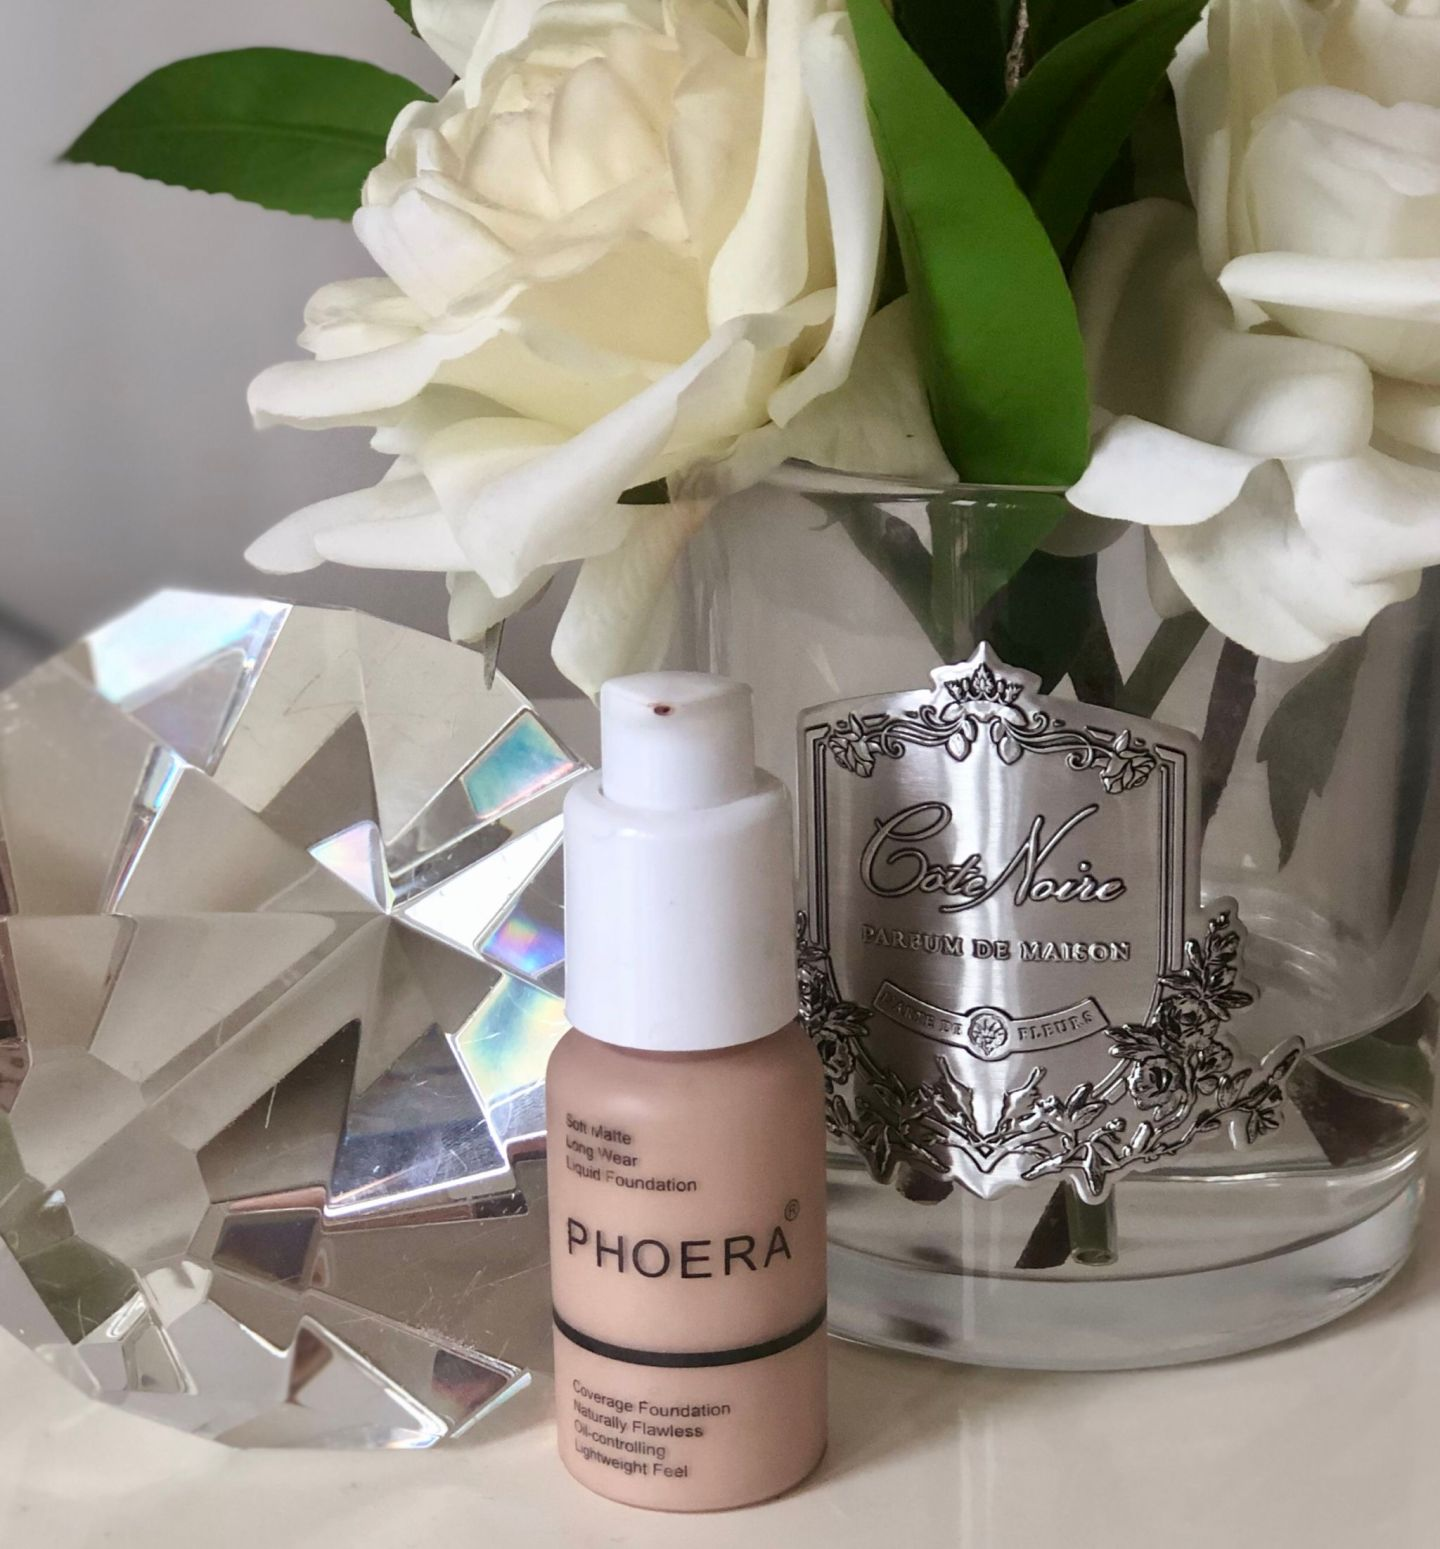 Full Coverage Foundation - Phoera